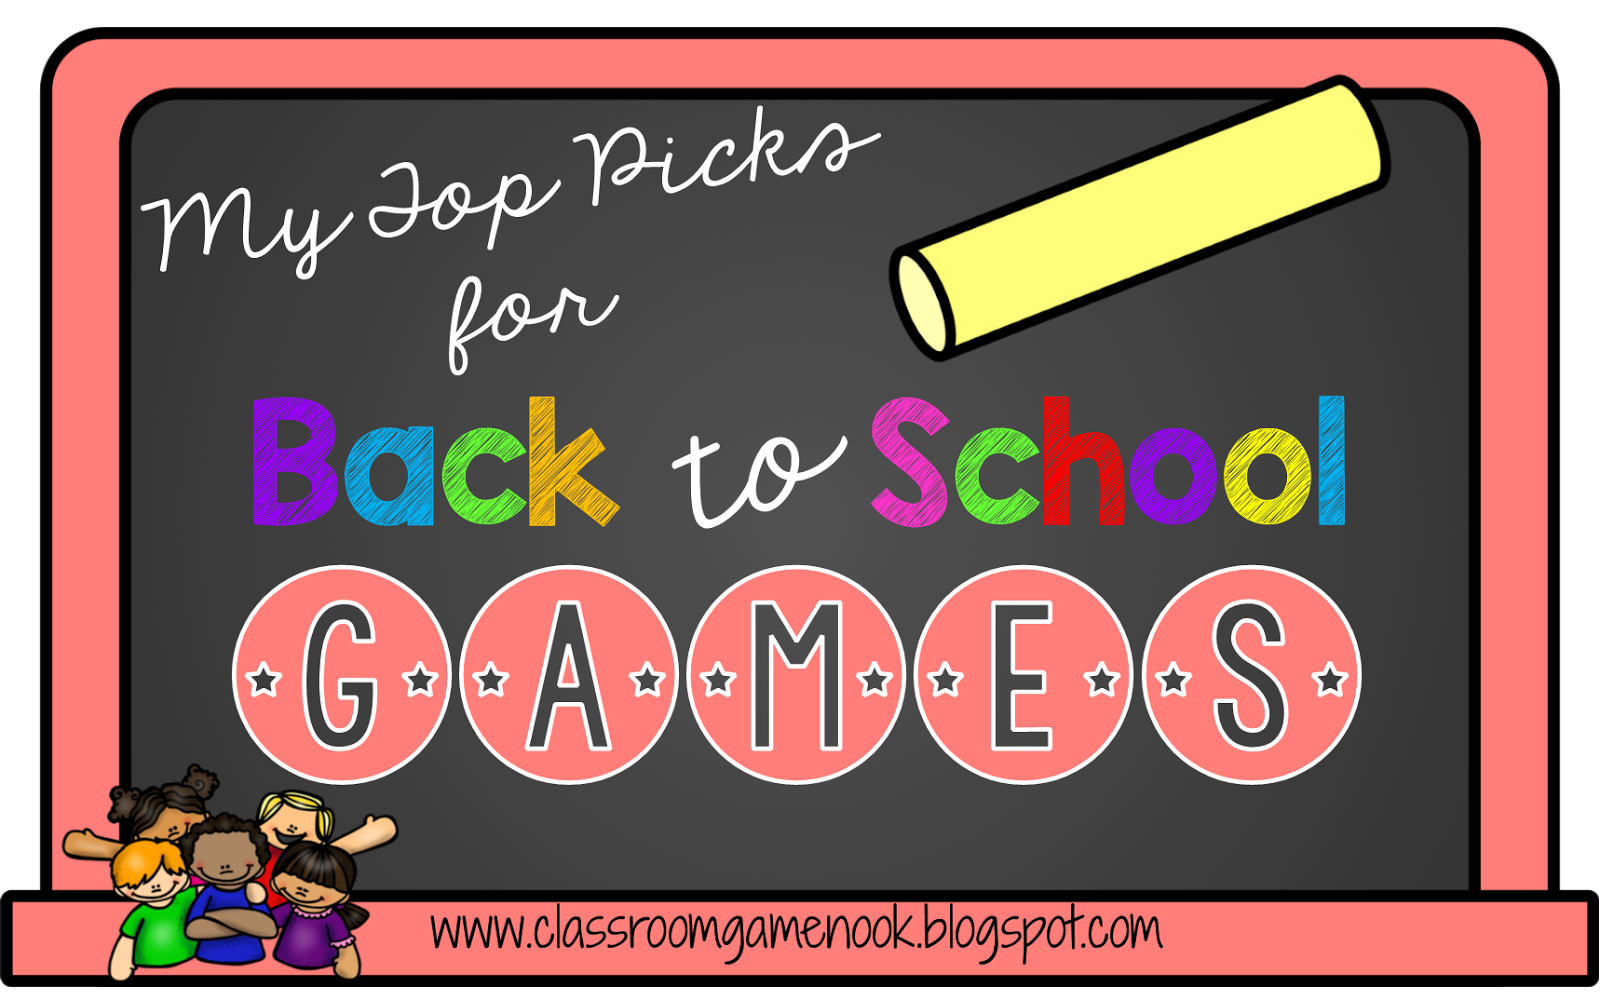 The Classroom Game Nook: My Top Picks for Back to School Games